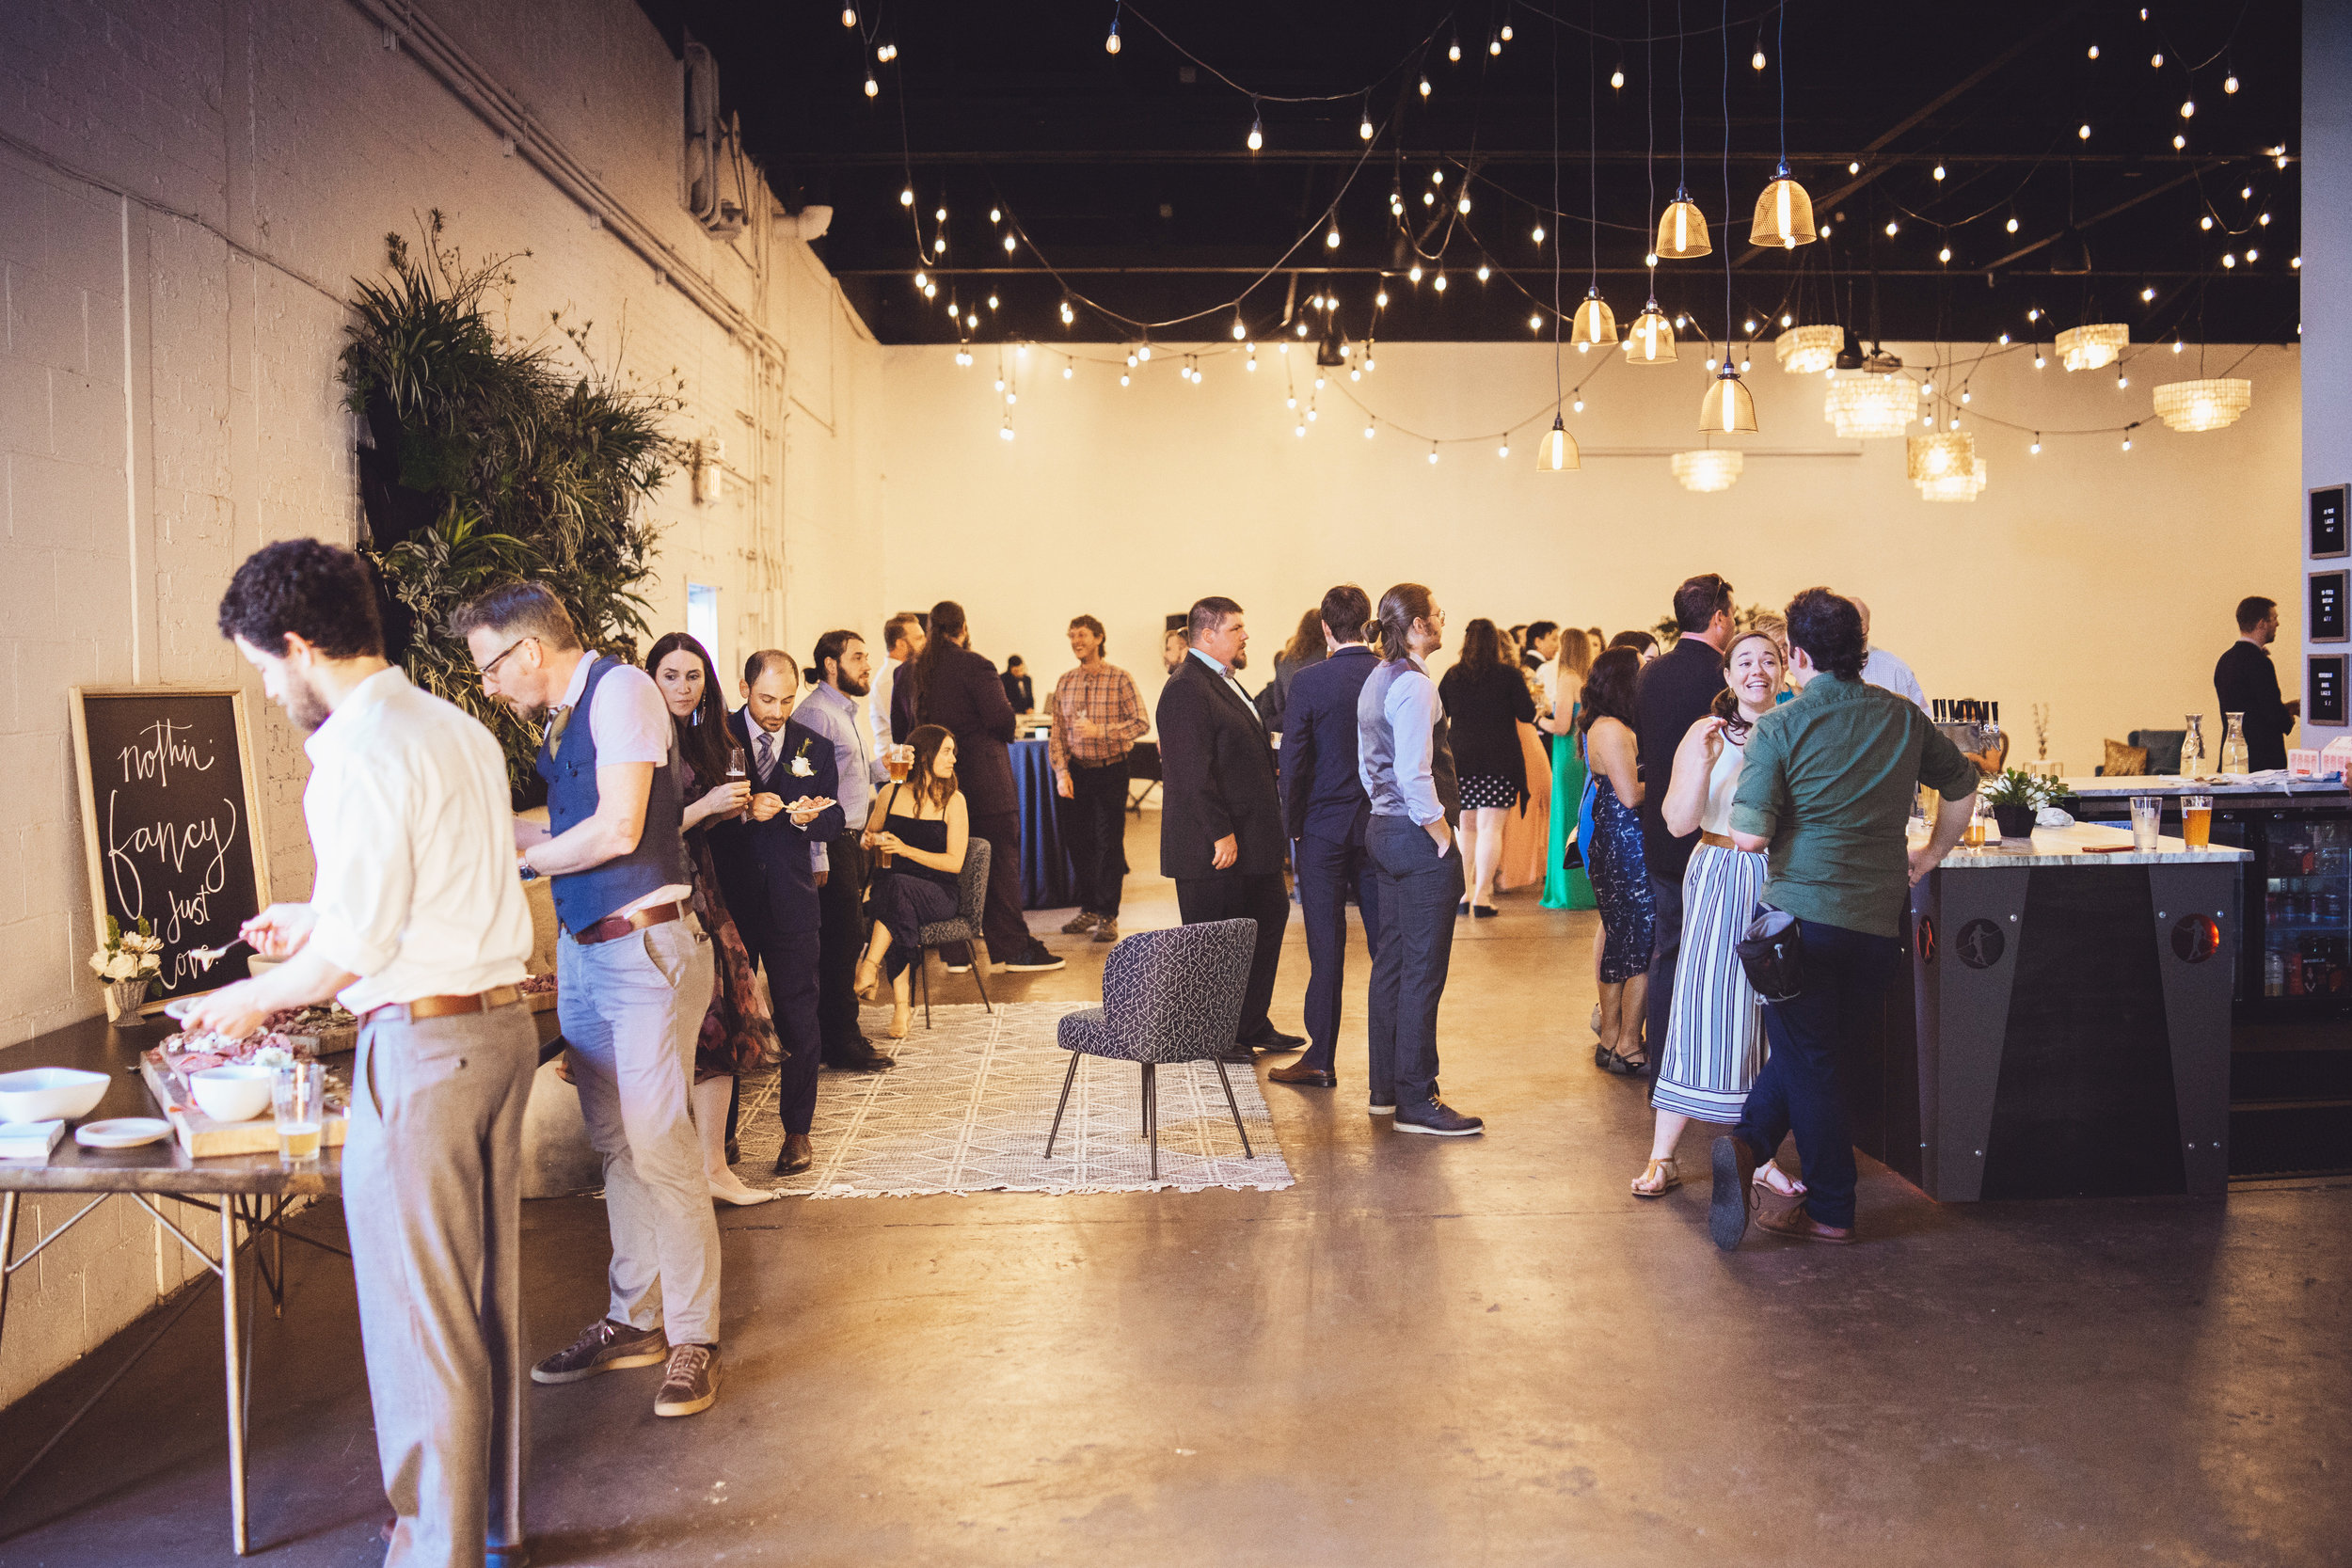 EventSpace_Foothills9_Tracy_Calderon-Colon.jpg